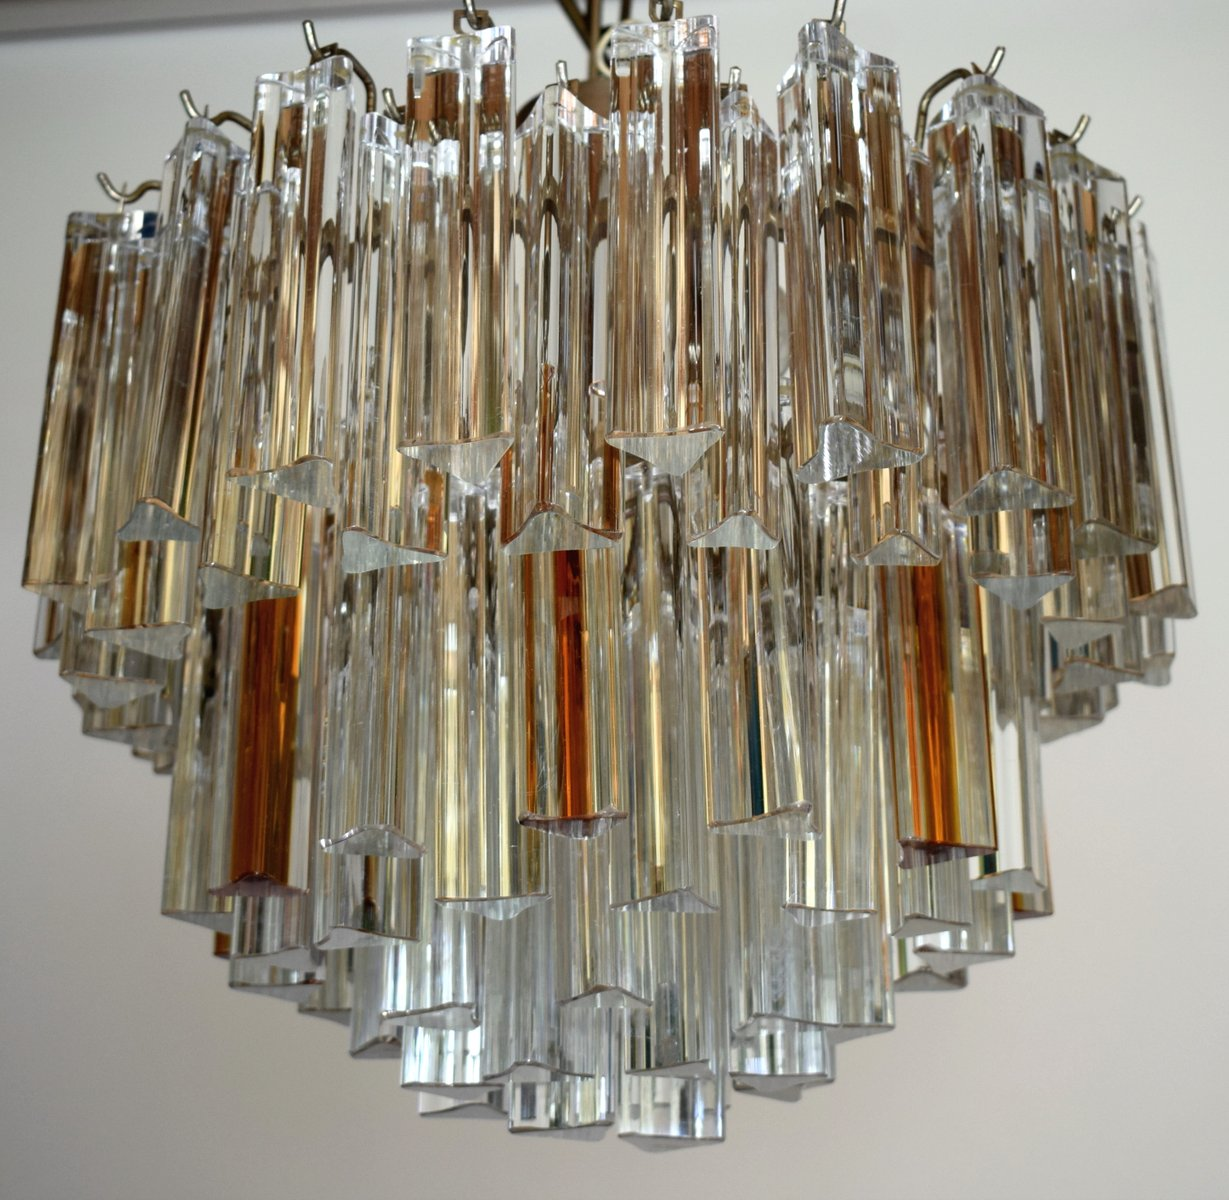 Mid century modern chandelier with clear and amber glass for sale at mid century modern chandelier with clear and amber glass aloadofball